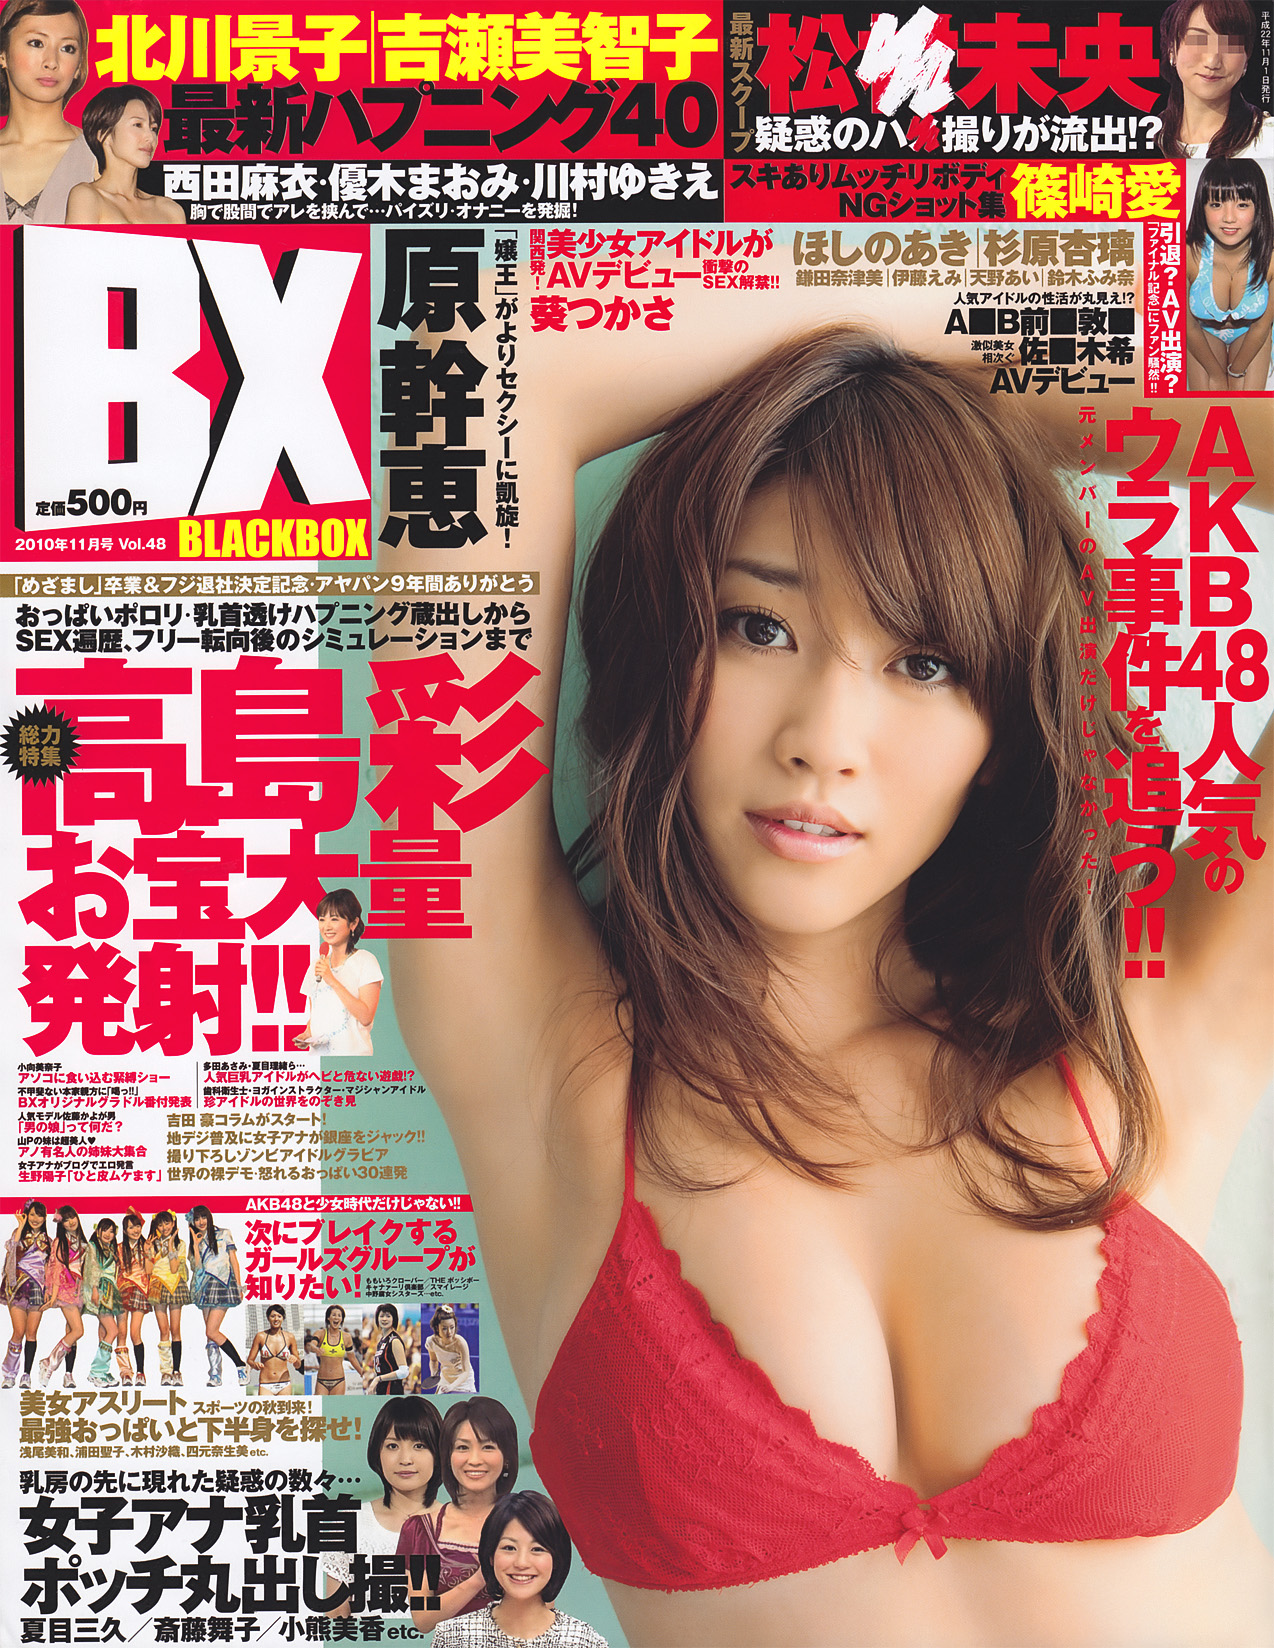 Black Box - November 2010 (Vol 48) 08110